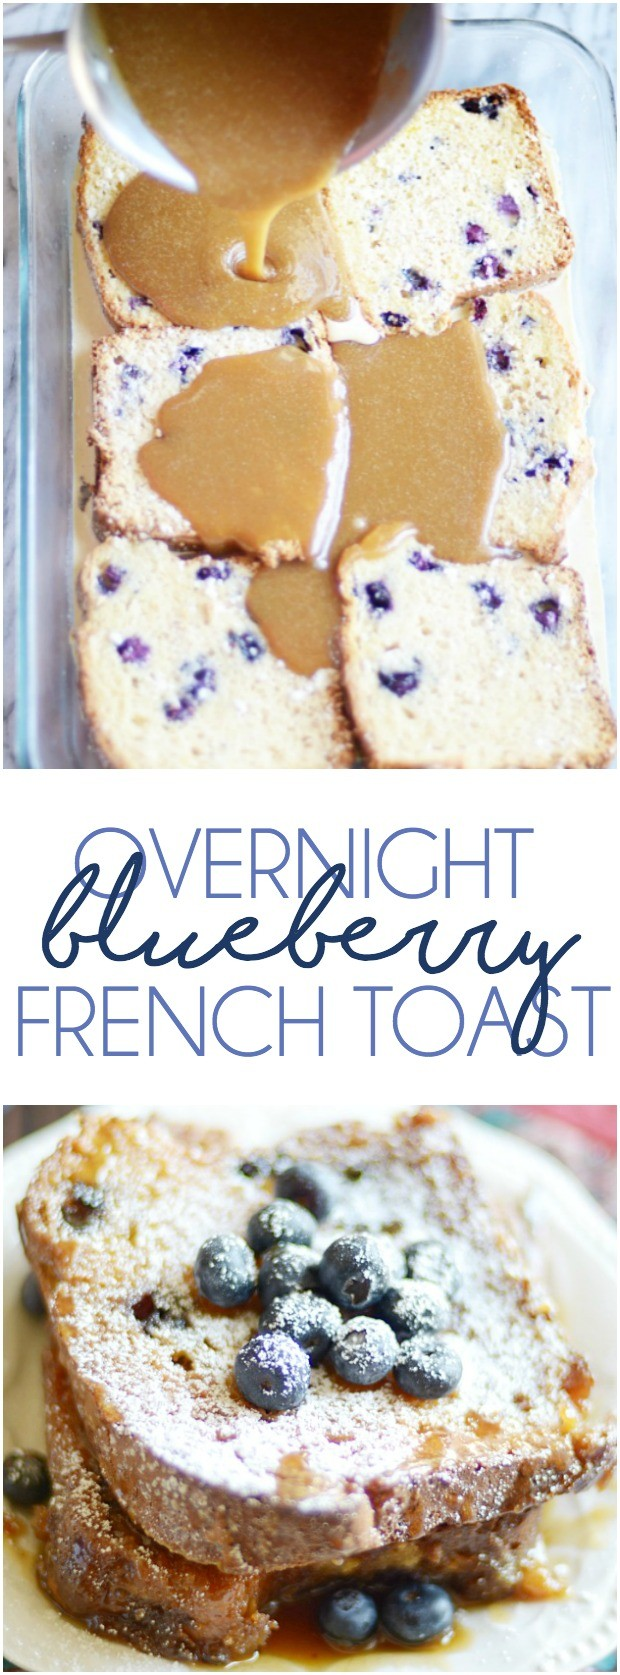 There are no words to describe how amazing this French Toast is. Baked in caramel sauce and filled with juicy blueberries, this make-ahead breakfast is flavor to the max!